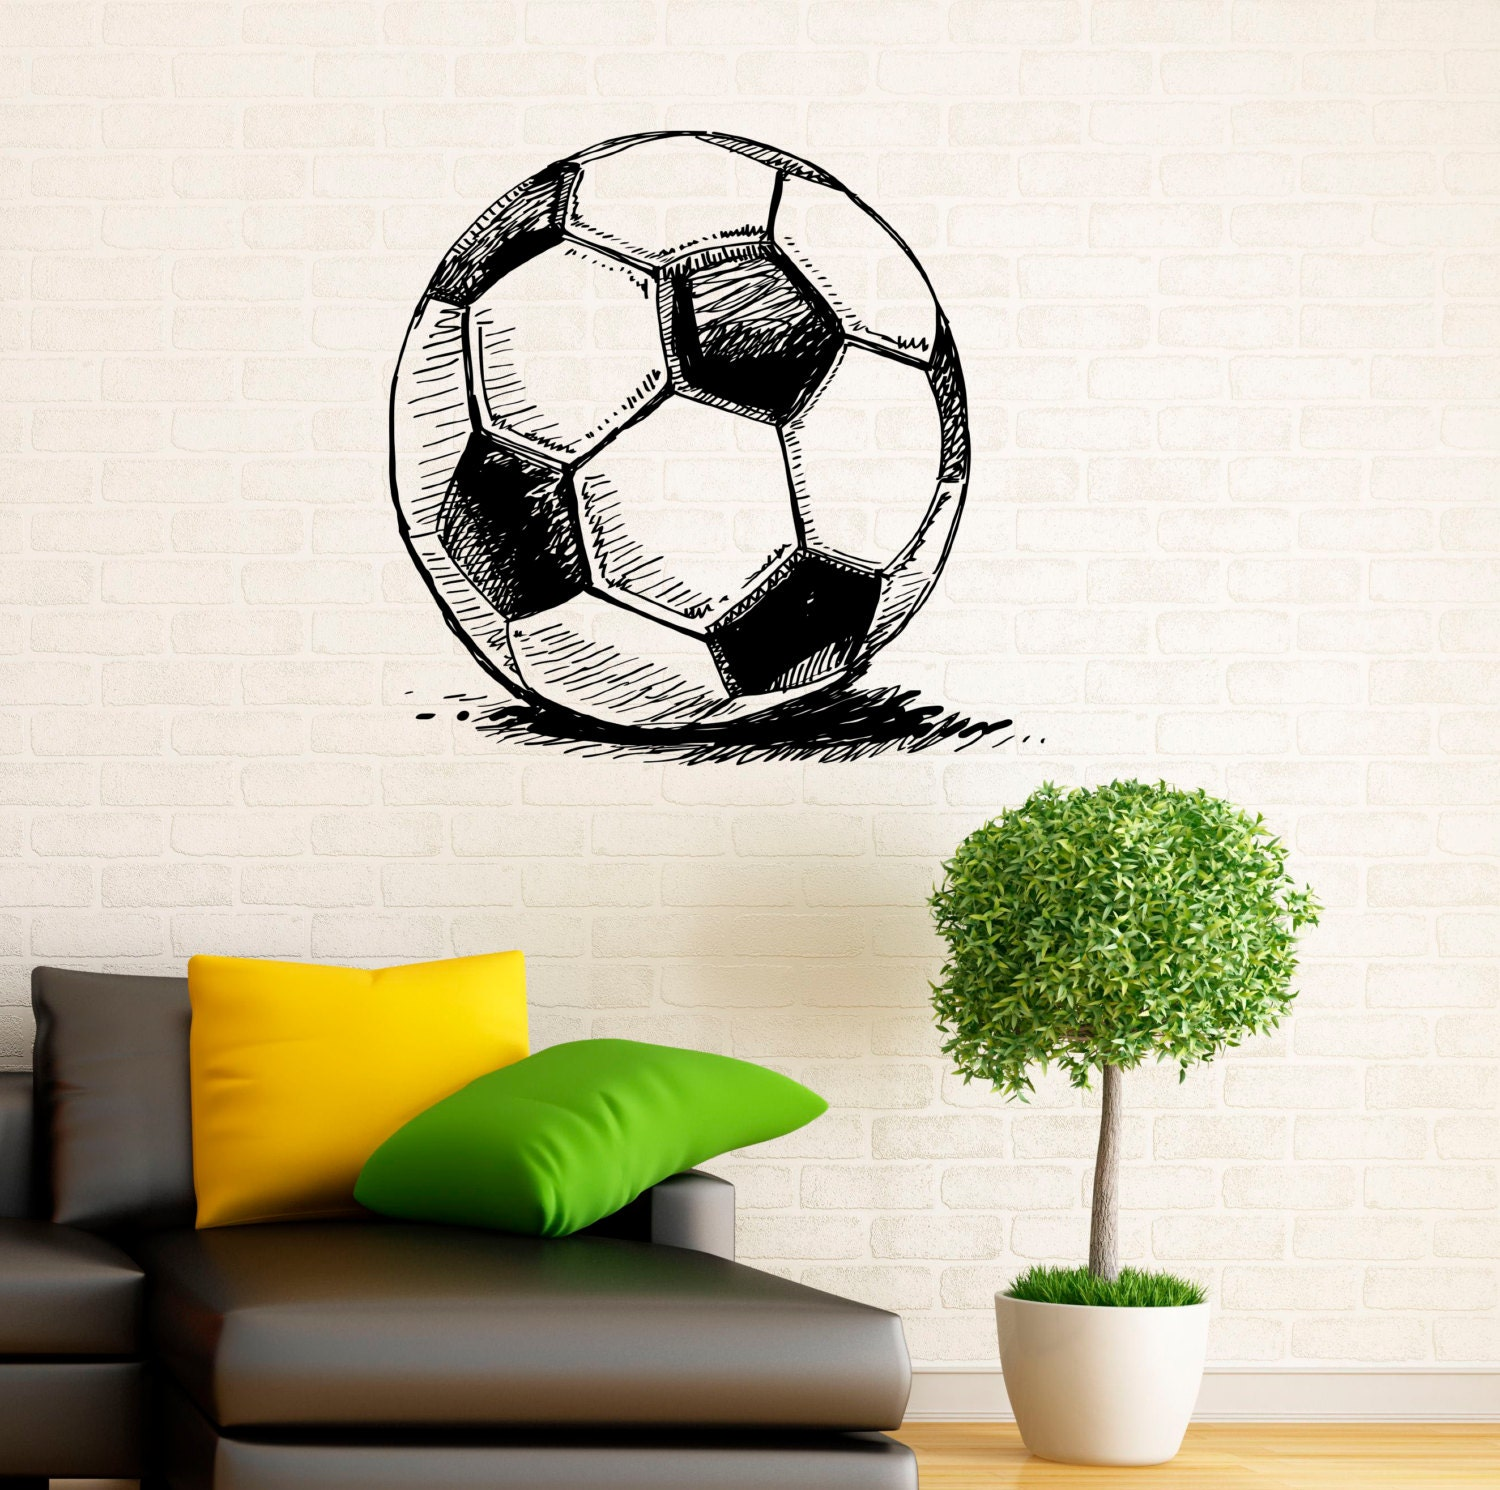 soccer ball wall decal football vinyl stickers sport game vinyl wall decal art sticker soccer football goal net